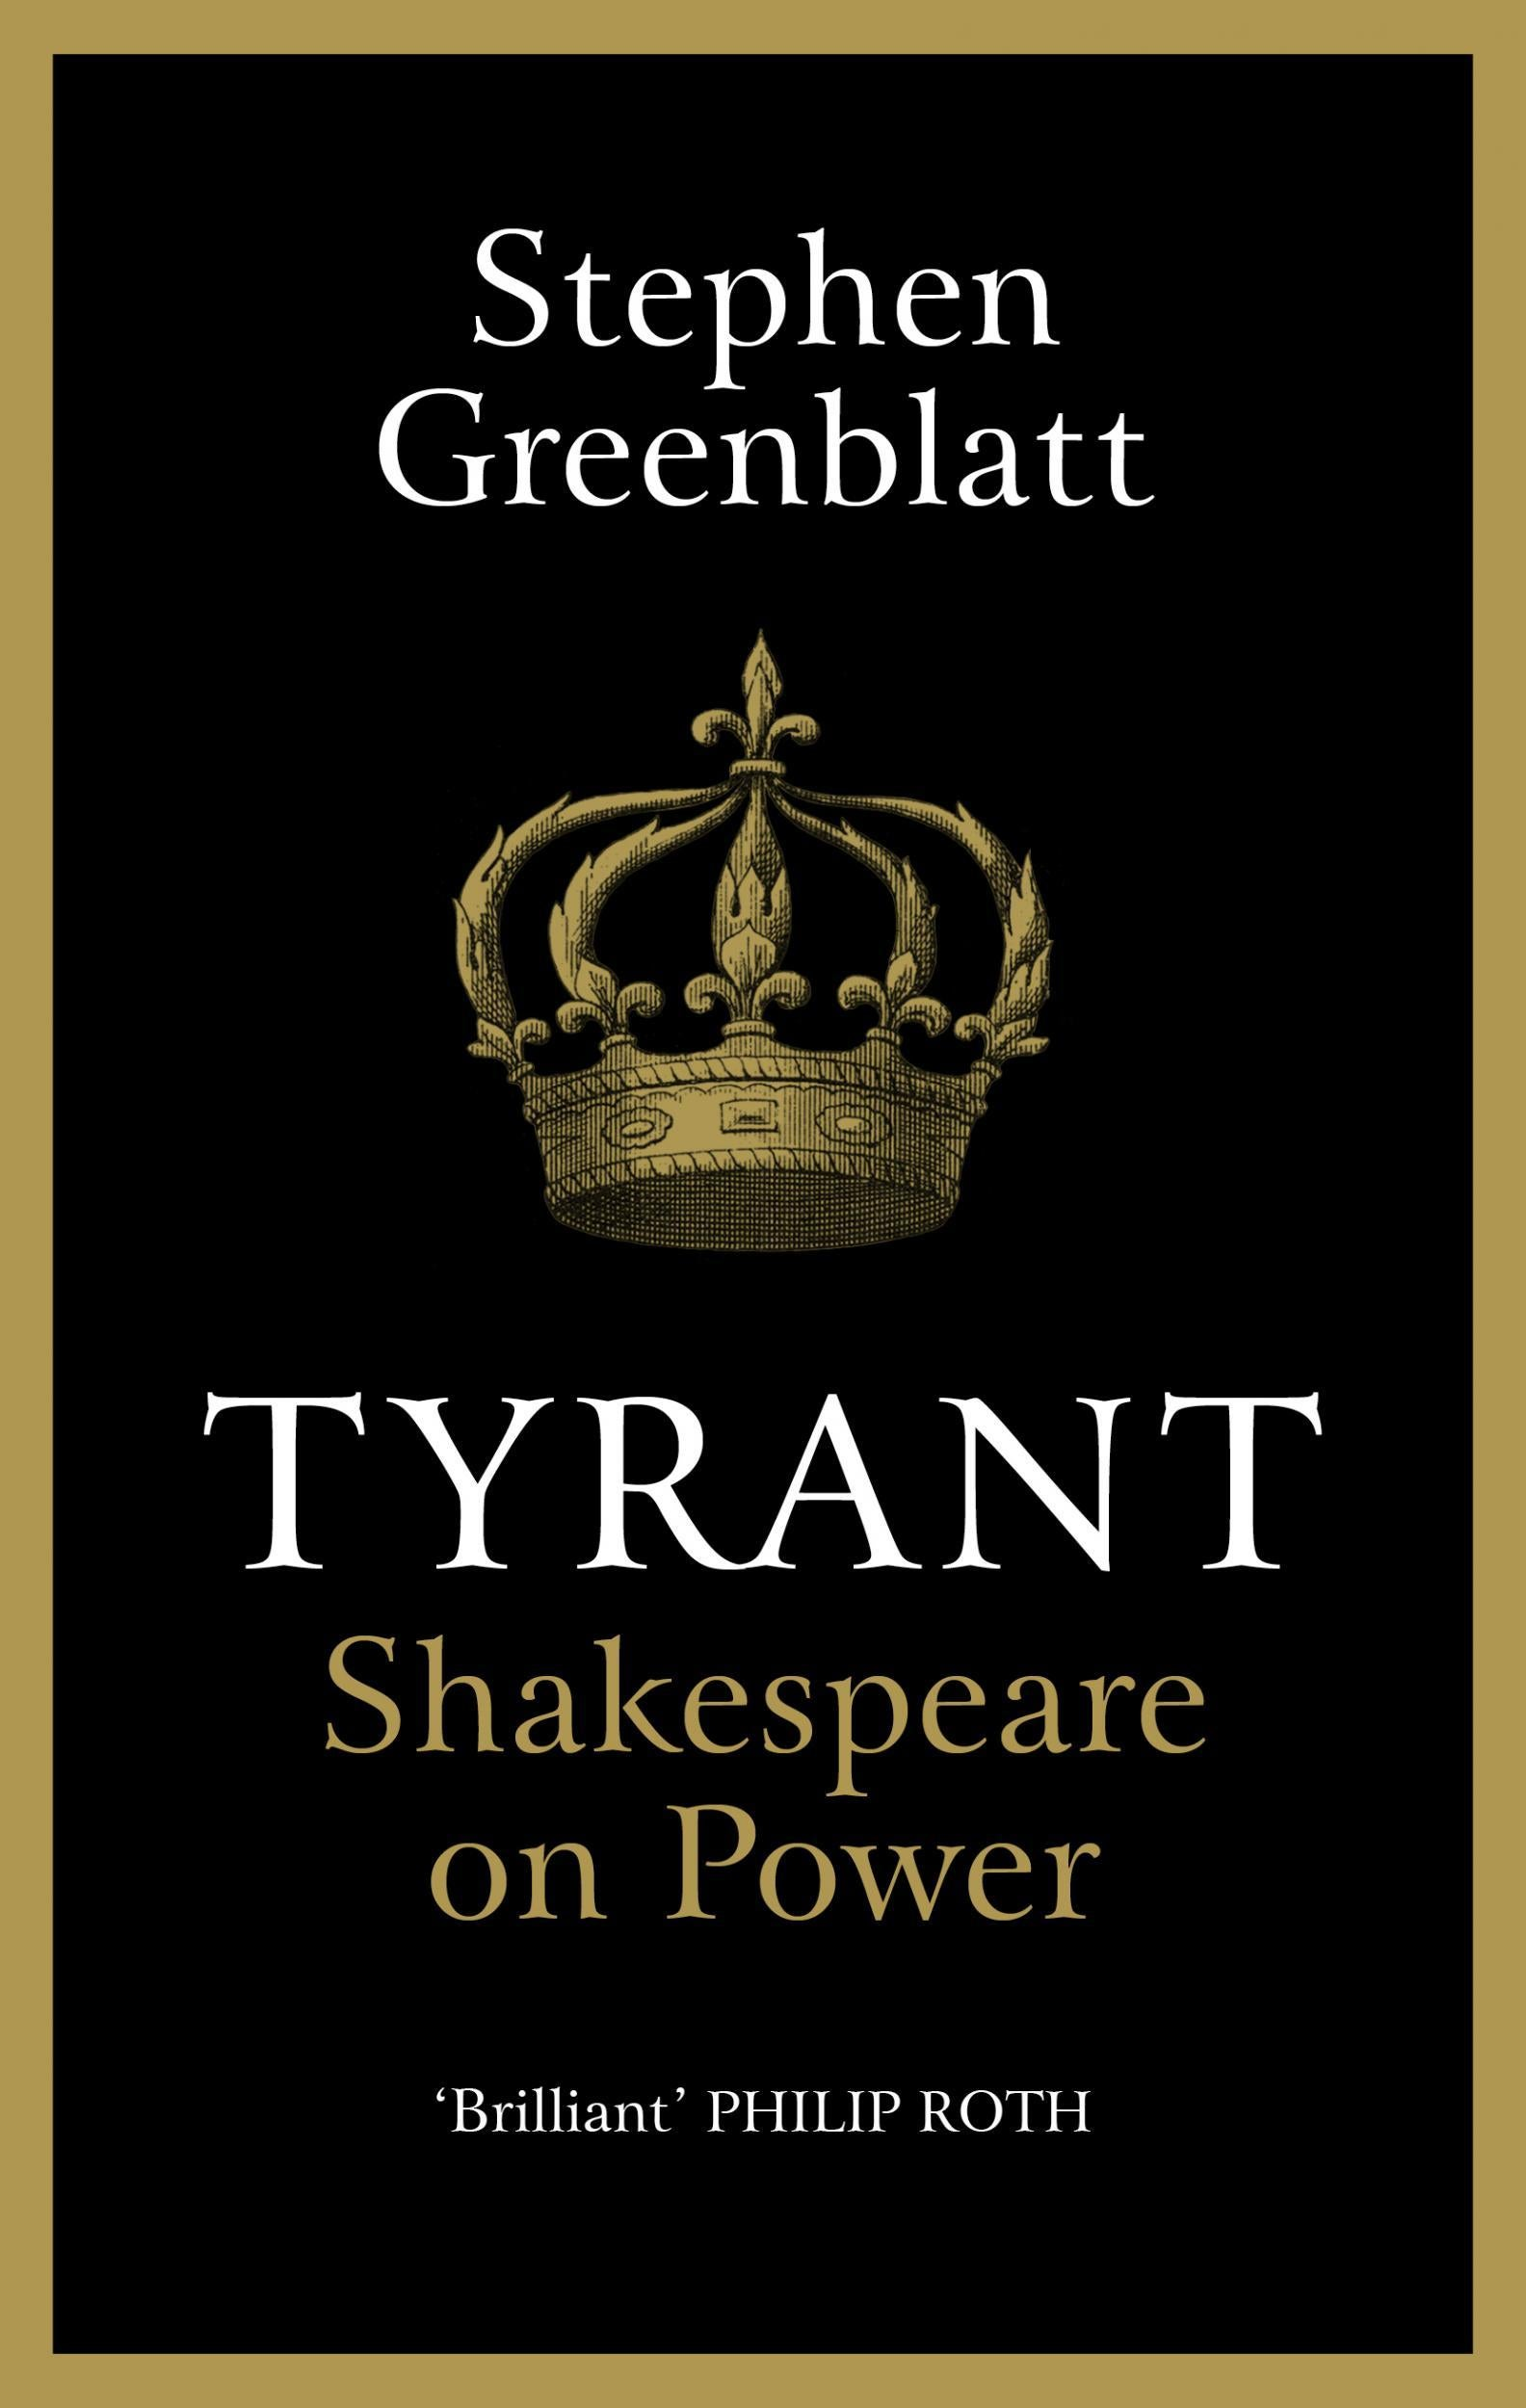 Image result for tyrant greenblatt